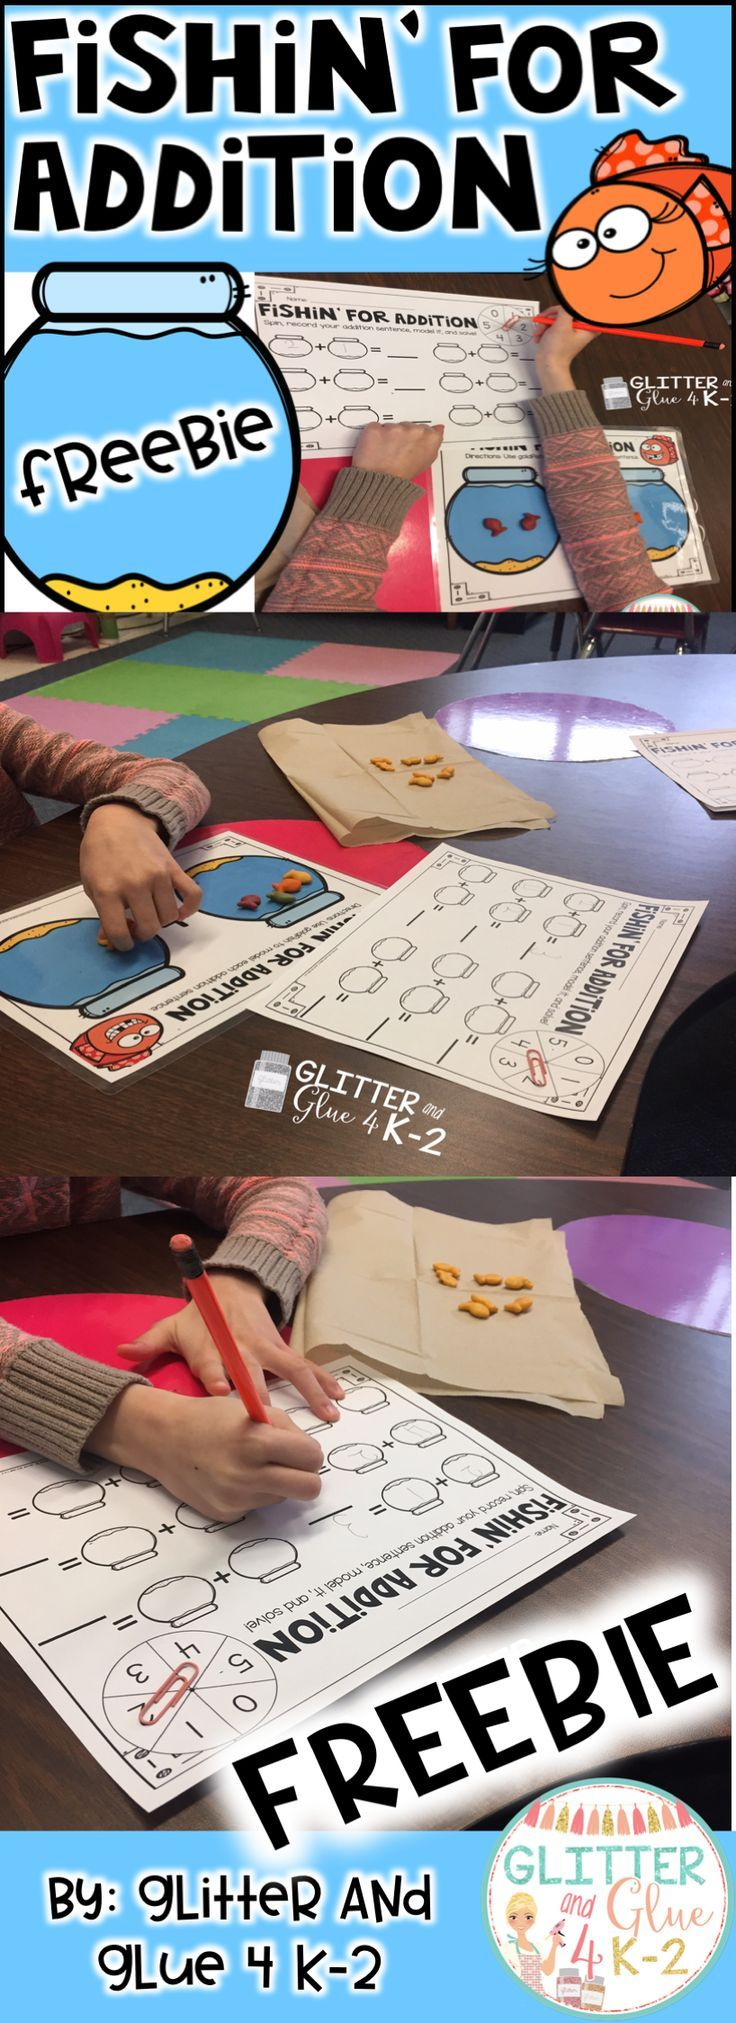 A fun way to teach addition for kindergarten and first grade! Use the goldfish crackers as manipualtives! This is a great way to teach students strategies and can be used as a fun intervention. Best of all this is free at Glitter and Glue 4 K-2's blog! Keywords: addition, kindergarten, first grade, intervention, math centers, adding, fun math, freebies, freebies for teachers.